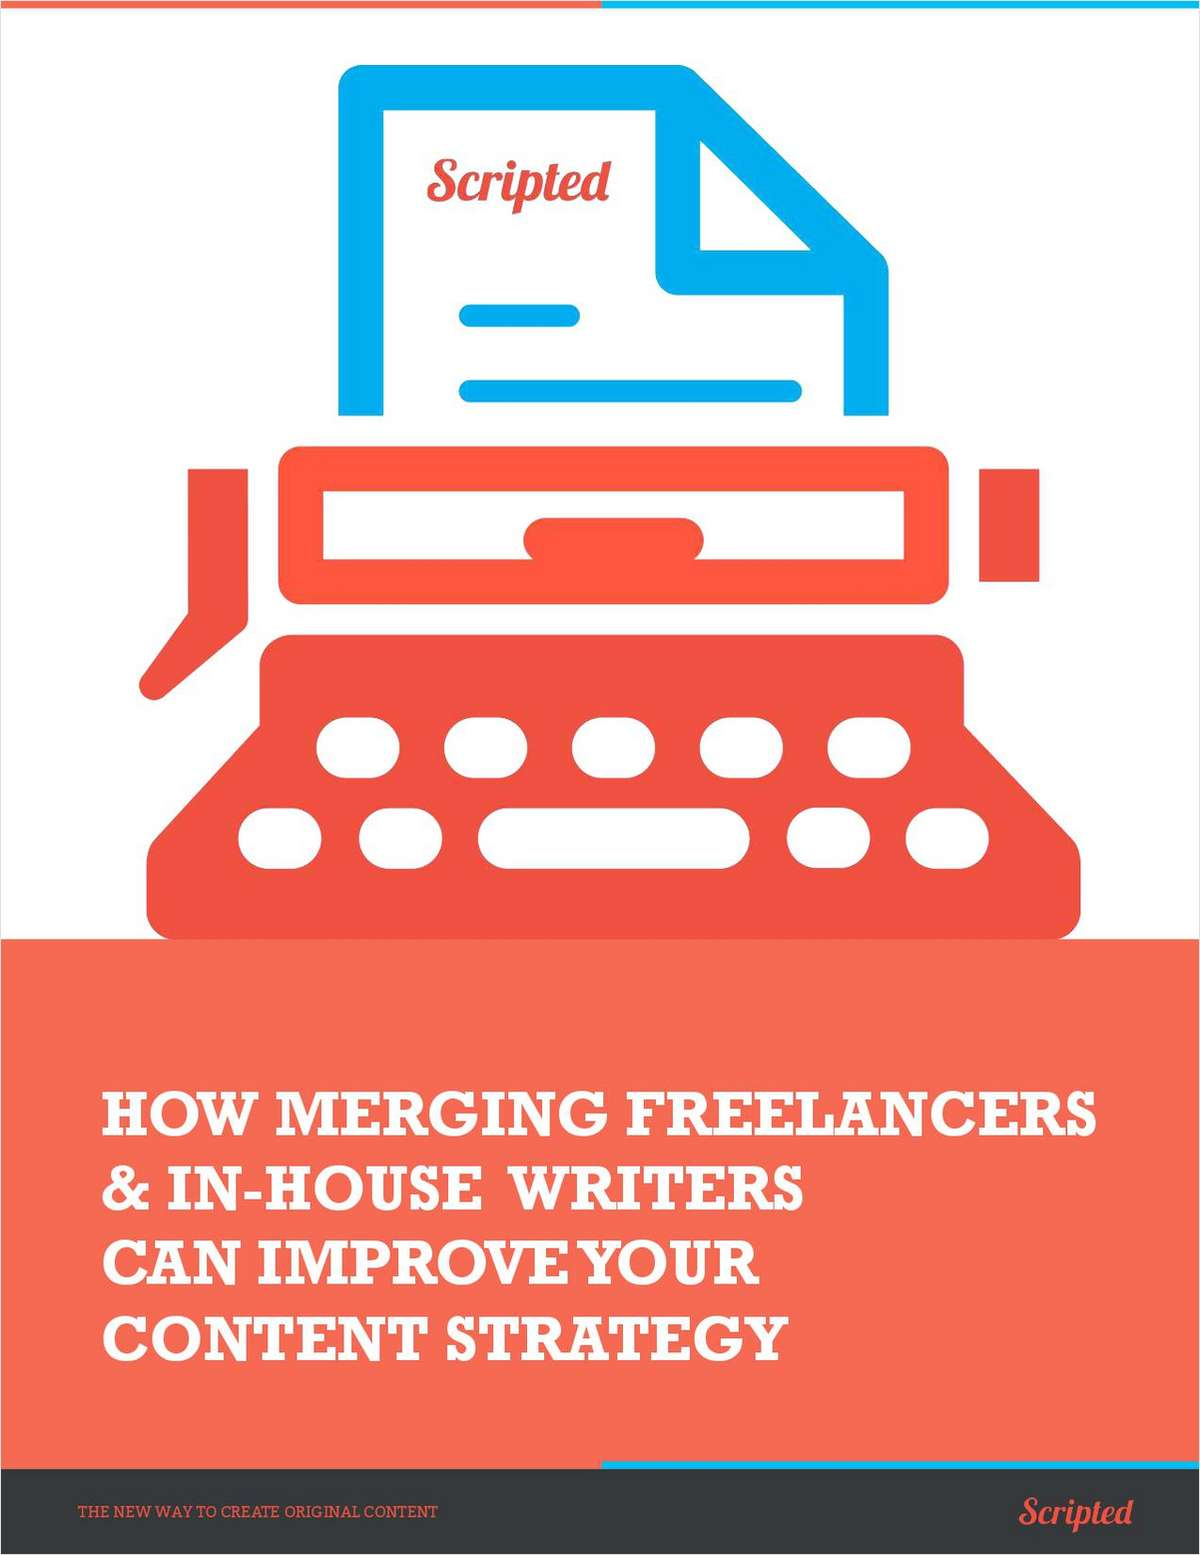 How Merging Freelancers and In-House Writers Can Improve Your Content Strategy